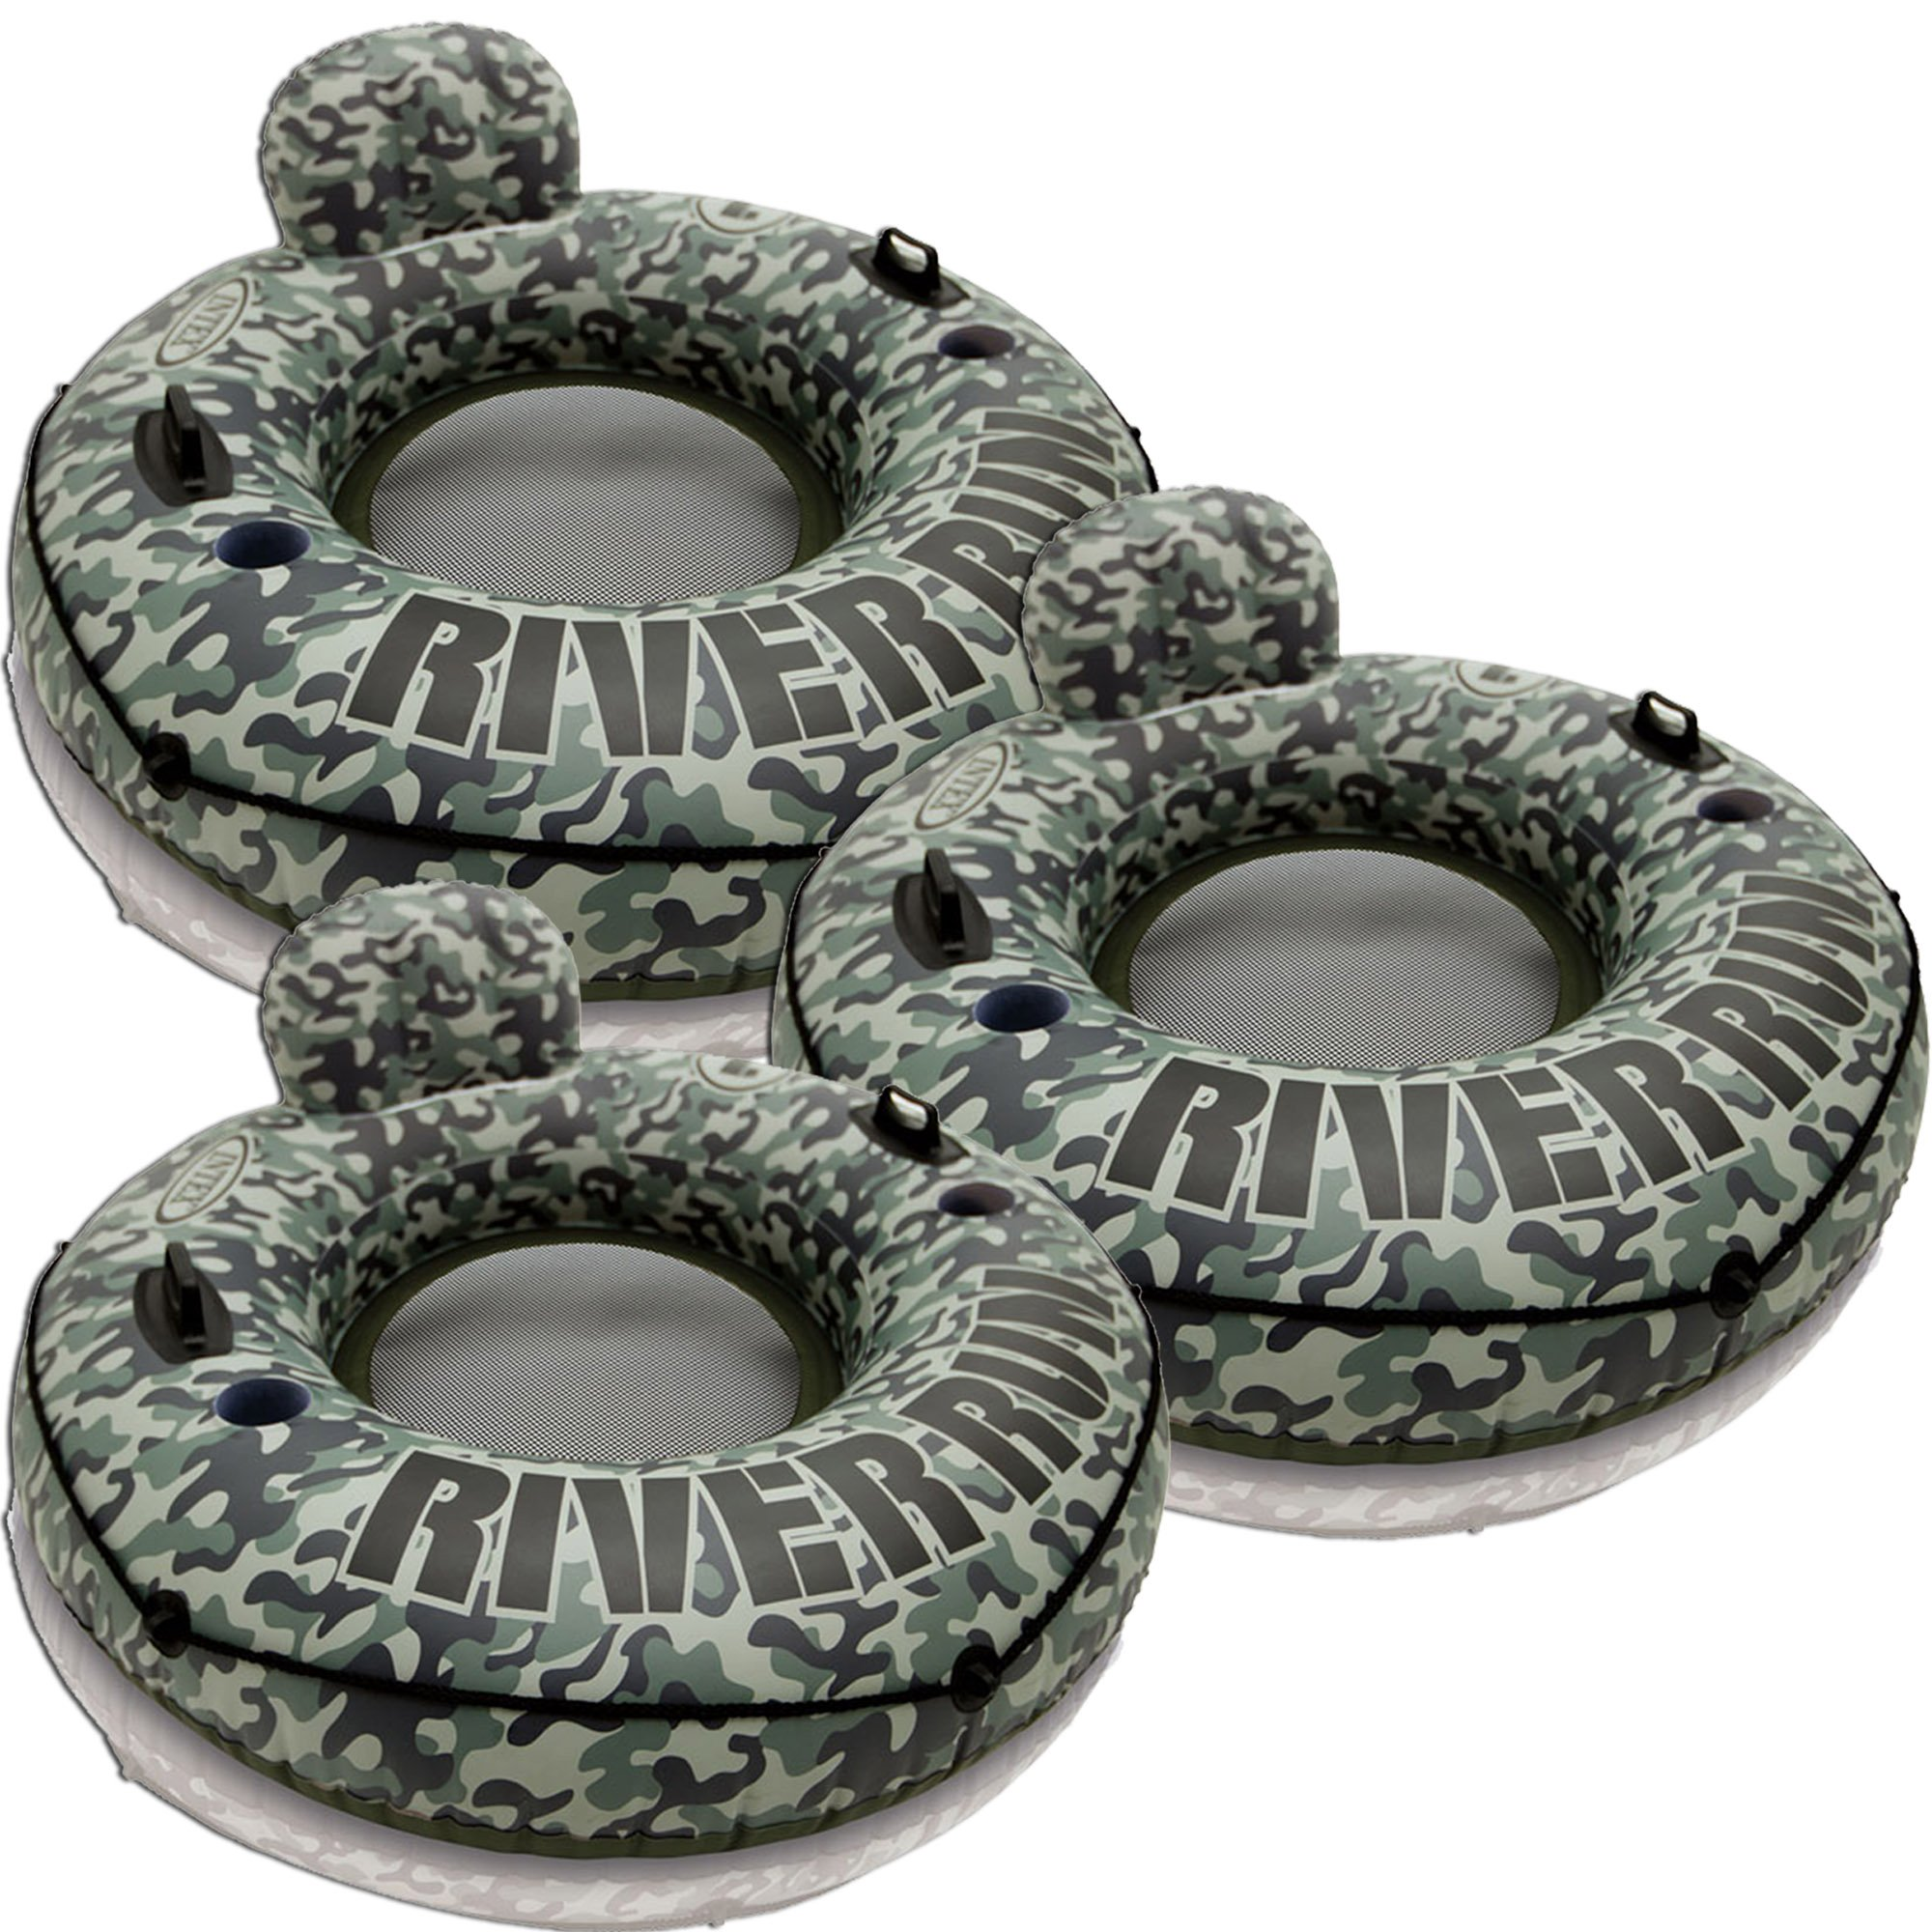 3 Pack Intex River Run 53-Inch Inflatable Tube (Camo) by Intex (Image #1)